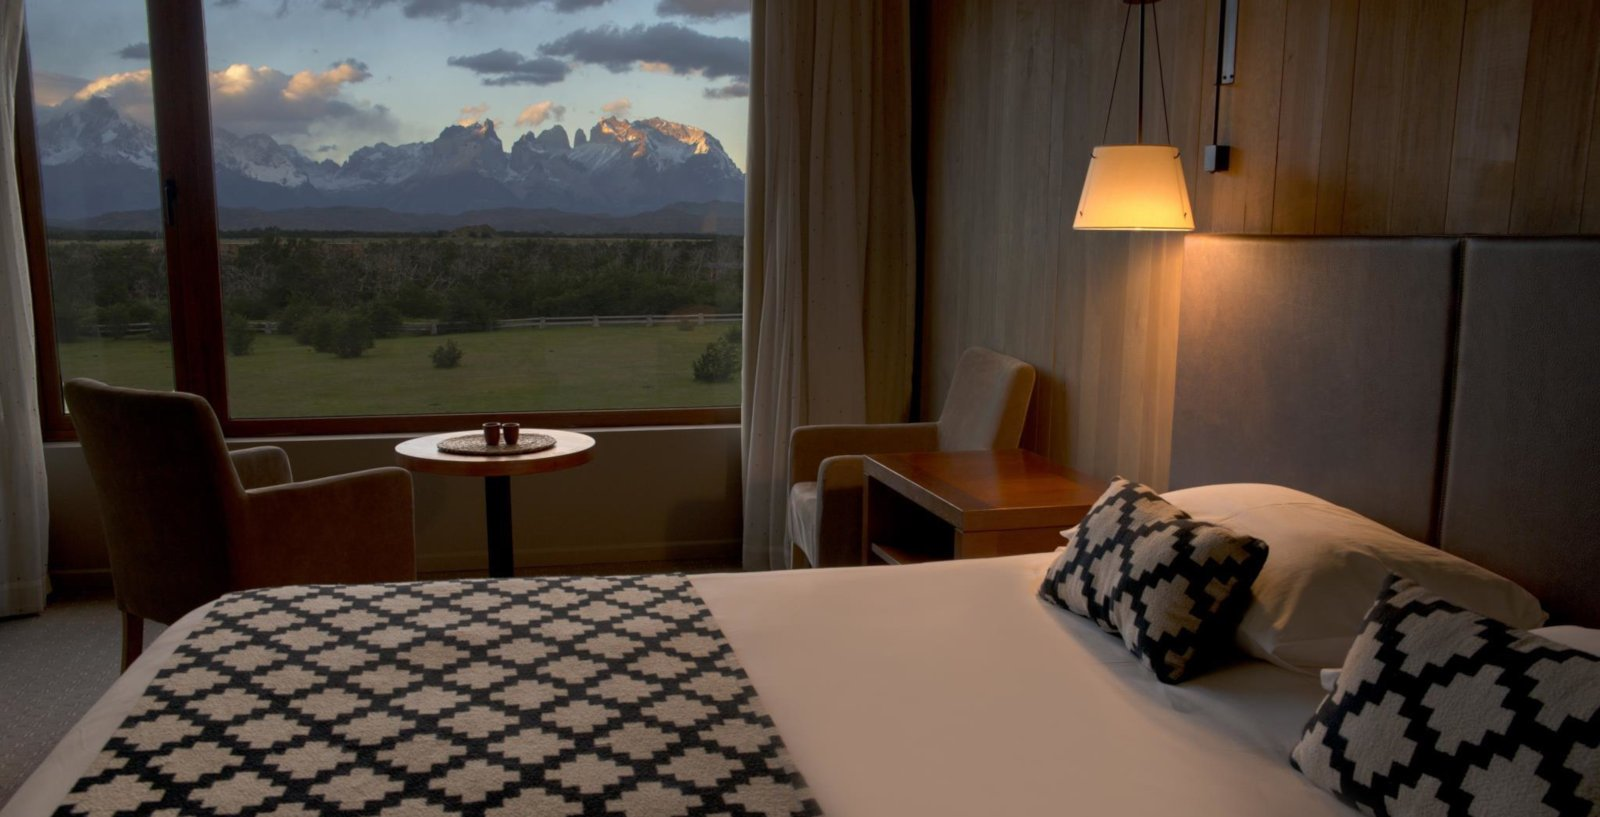 The Río Serrano Hotel and Spa is a luxurious option for gay travellers visiting Torres del Paine.